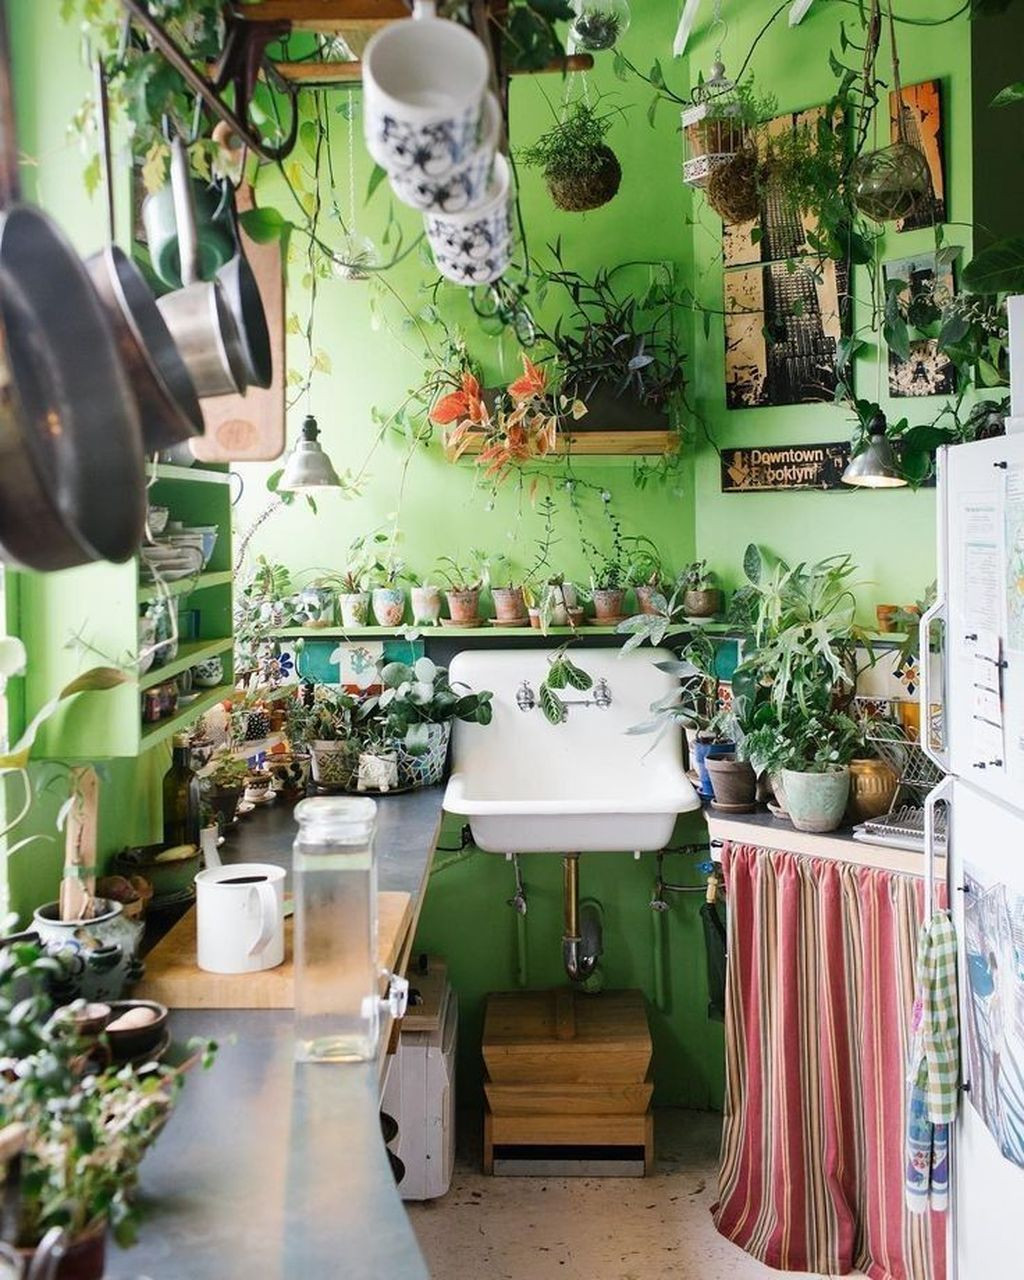 36 lovely bohemian kitchen decor ideas that you will like with images quirky kitchen on boho chic kitchen table ideas id=57459